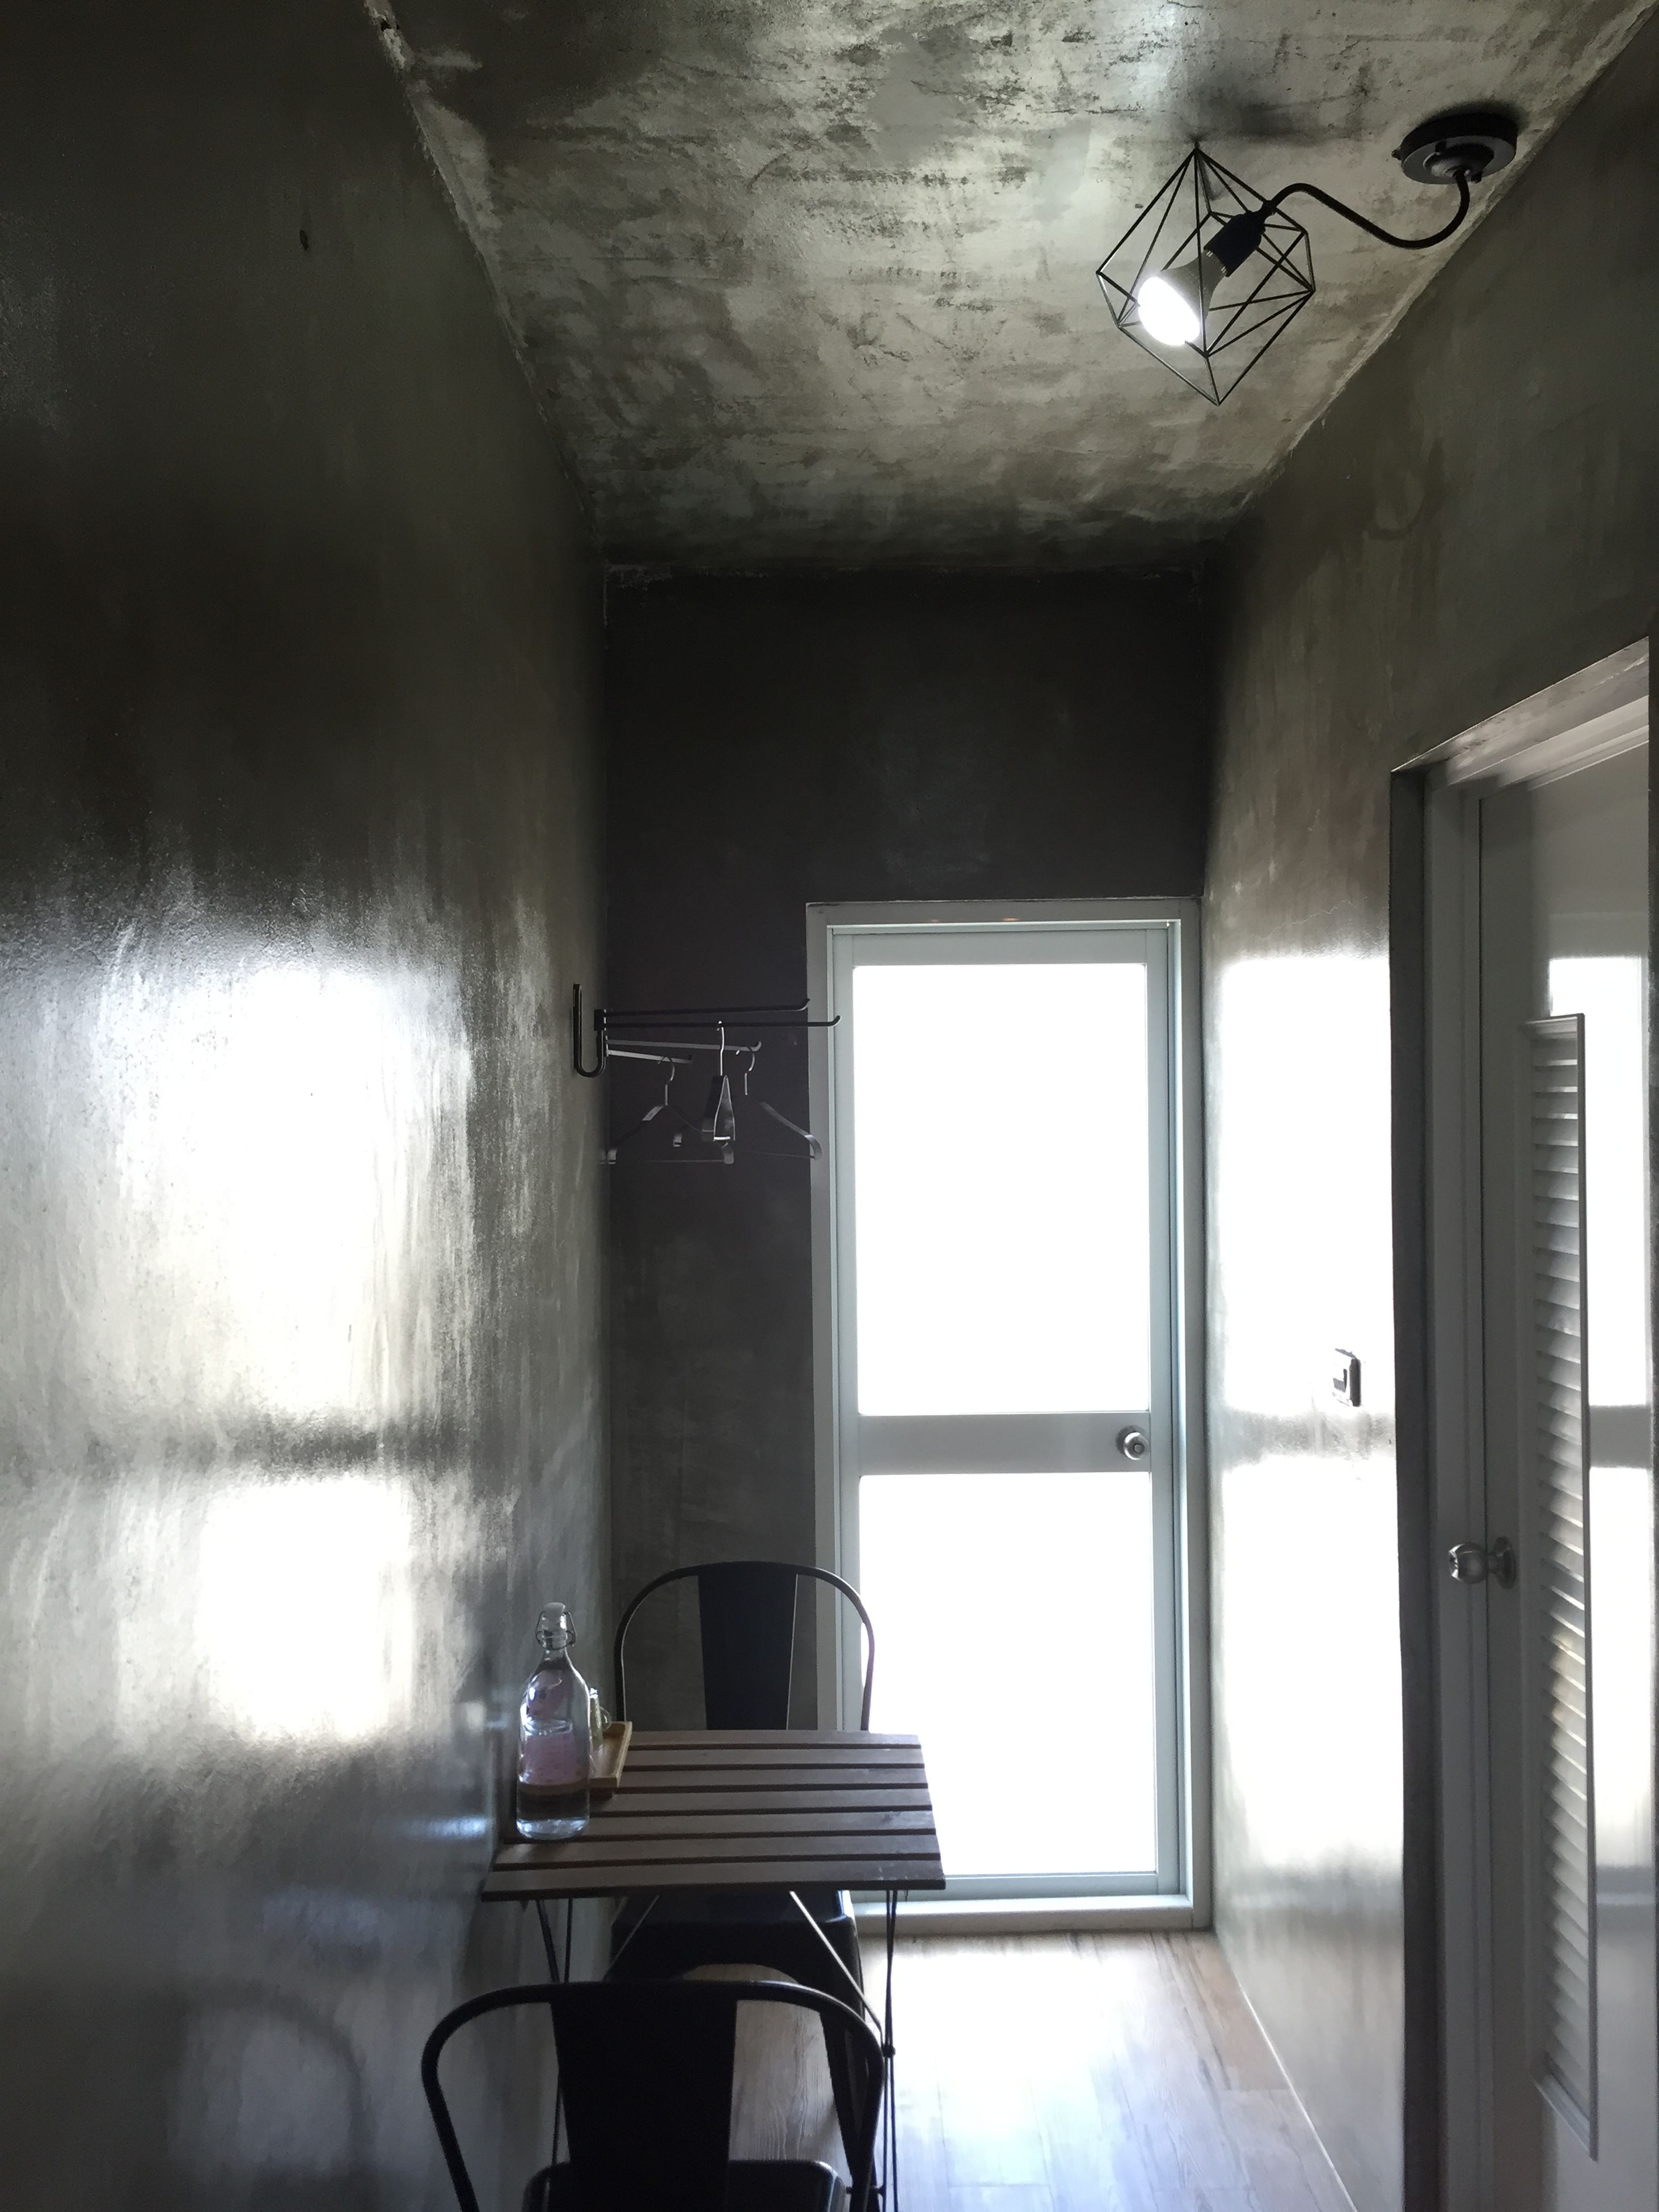 indoors, empty, architecture, window, interior, absence, built structure, corridor, flooring, home interior, ceiling, room, door, wall - building feature, domestic room, wall, illuminated, no people, reflection, abandoned